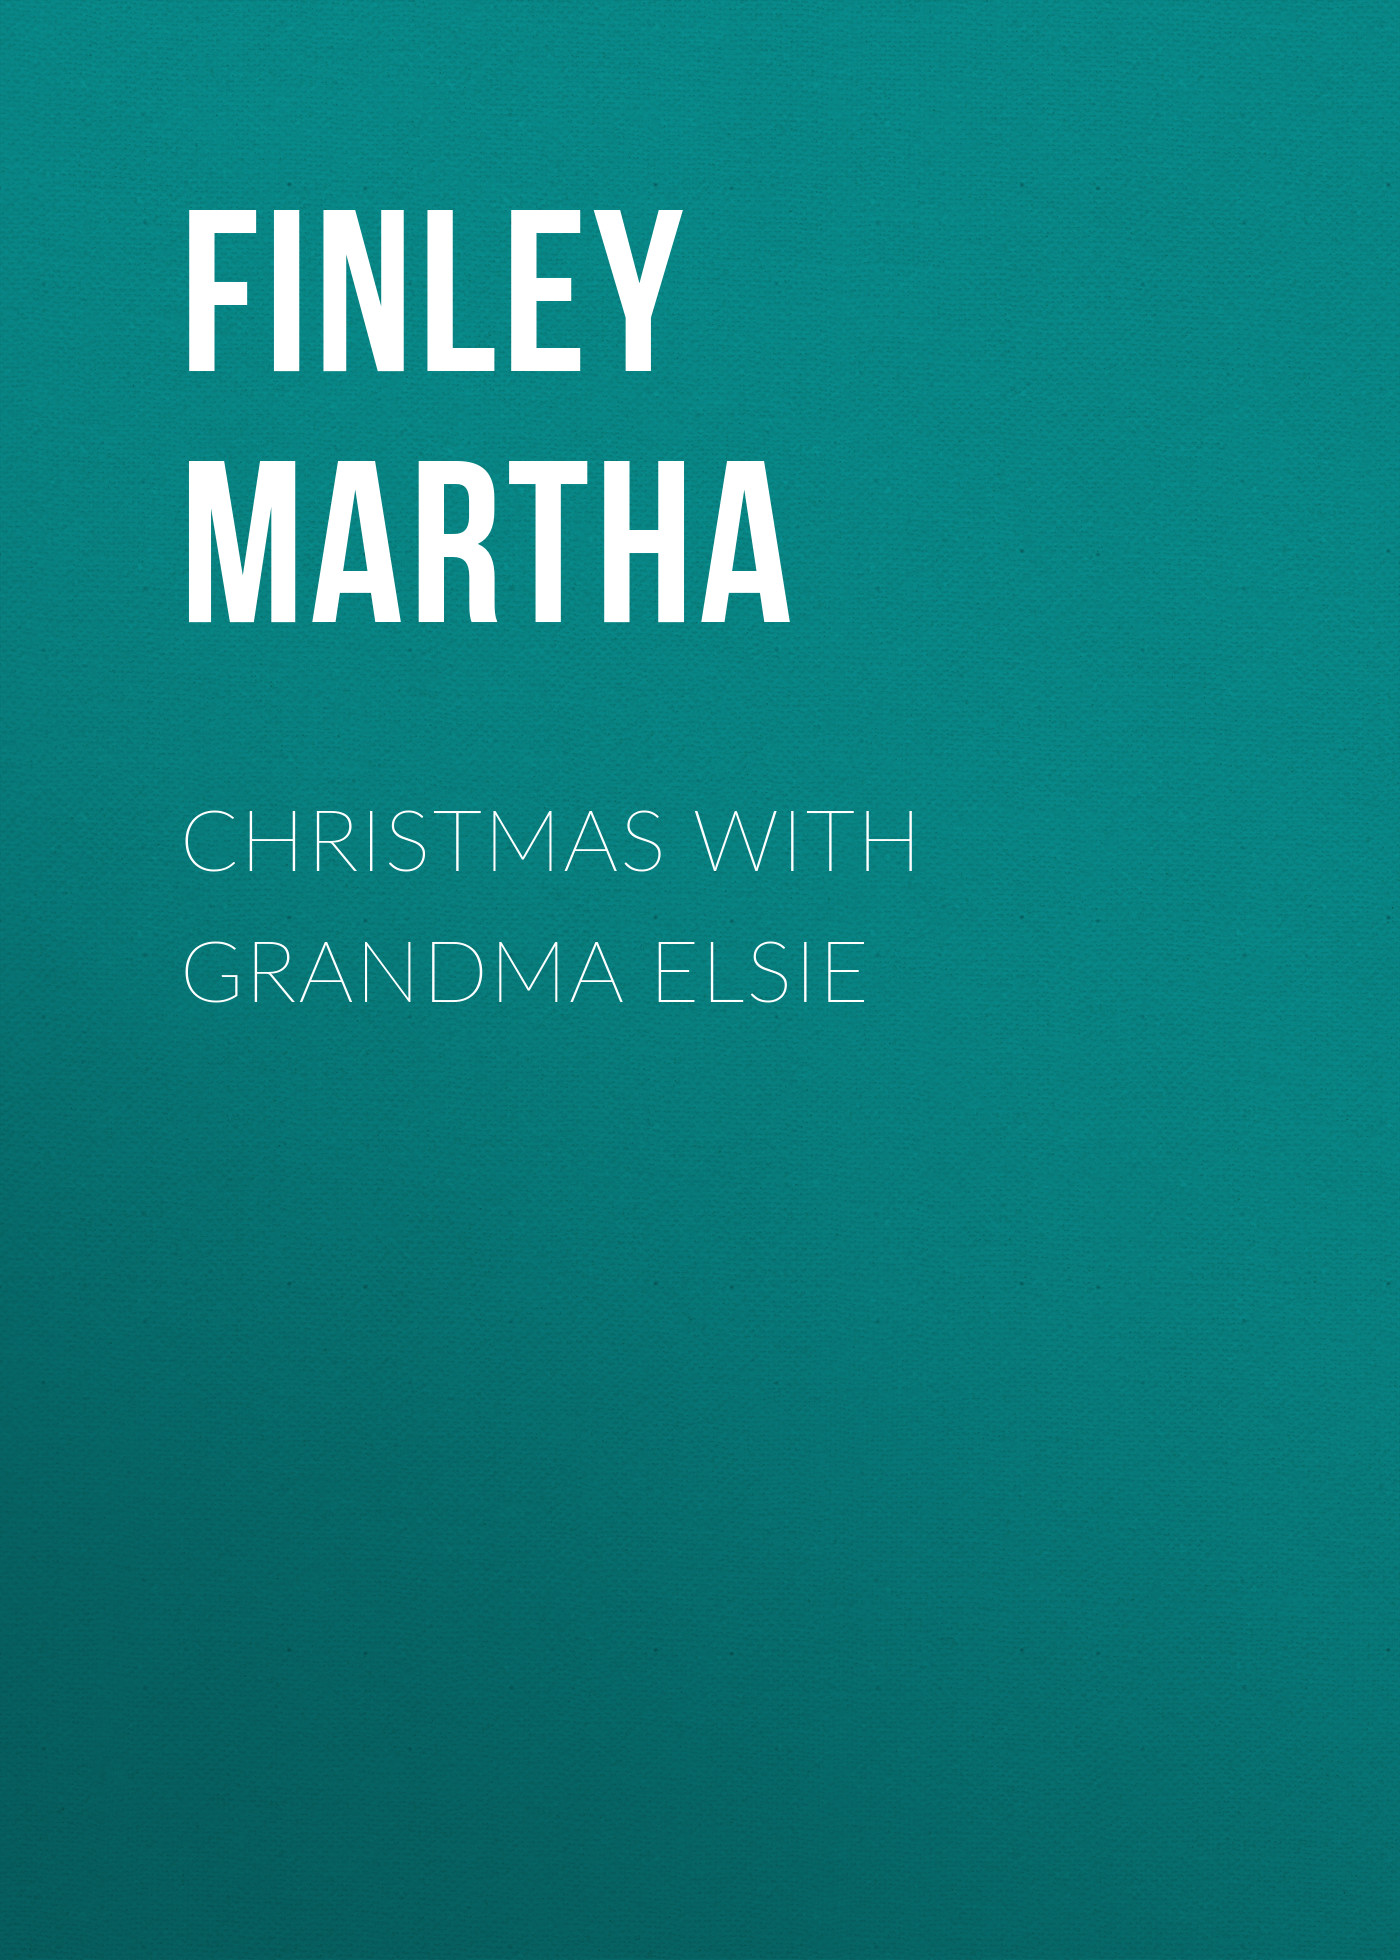 лучшая цена Finley Martha Christmas with Grandma Elsie